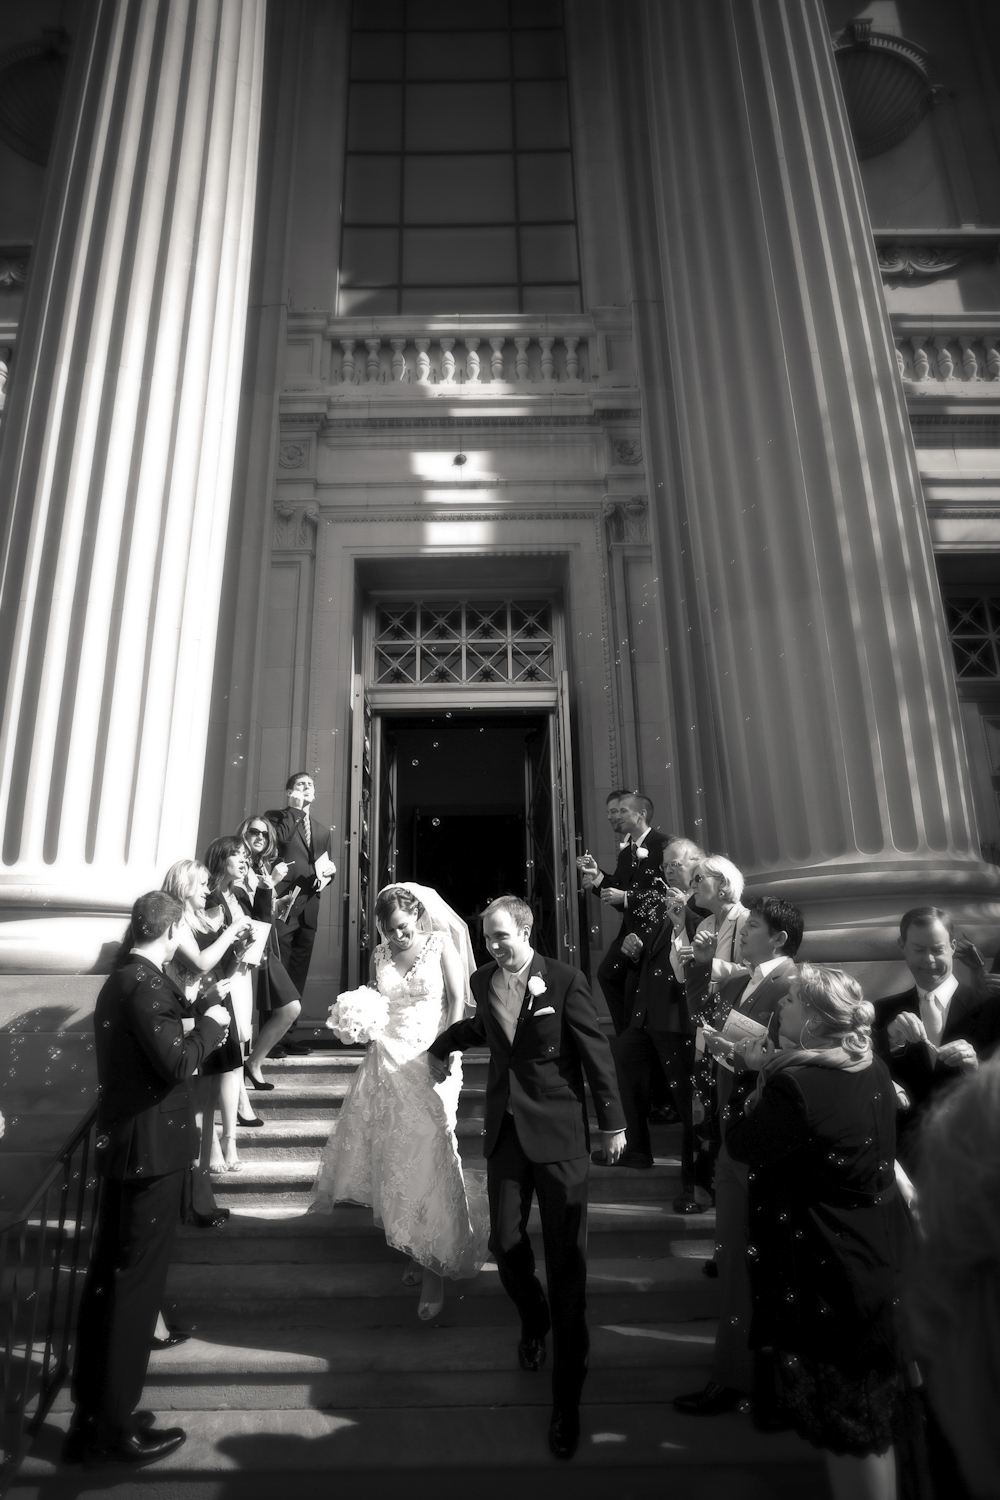 Indianapolis-Indiana-Wedding-Photographer-Crowes-Eye-Photography-Saint-Peter-and-Paul-Cathedral.jpg